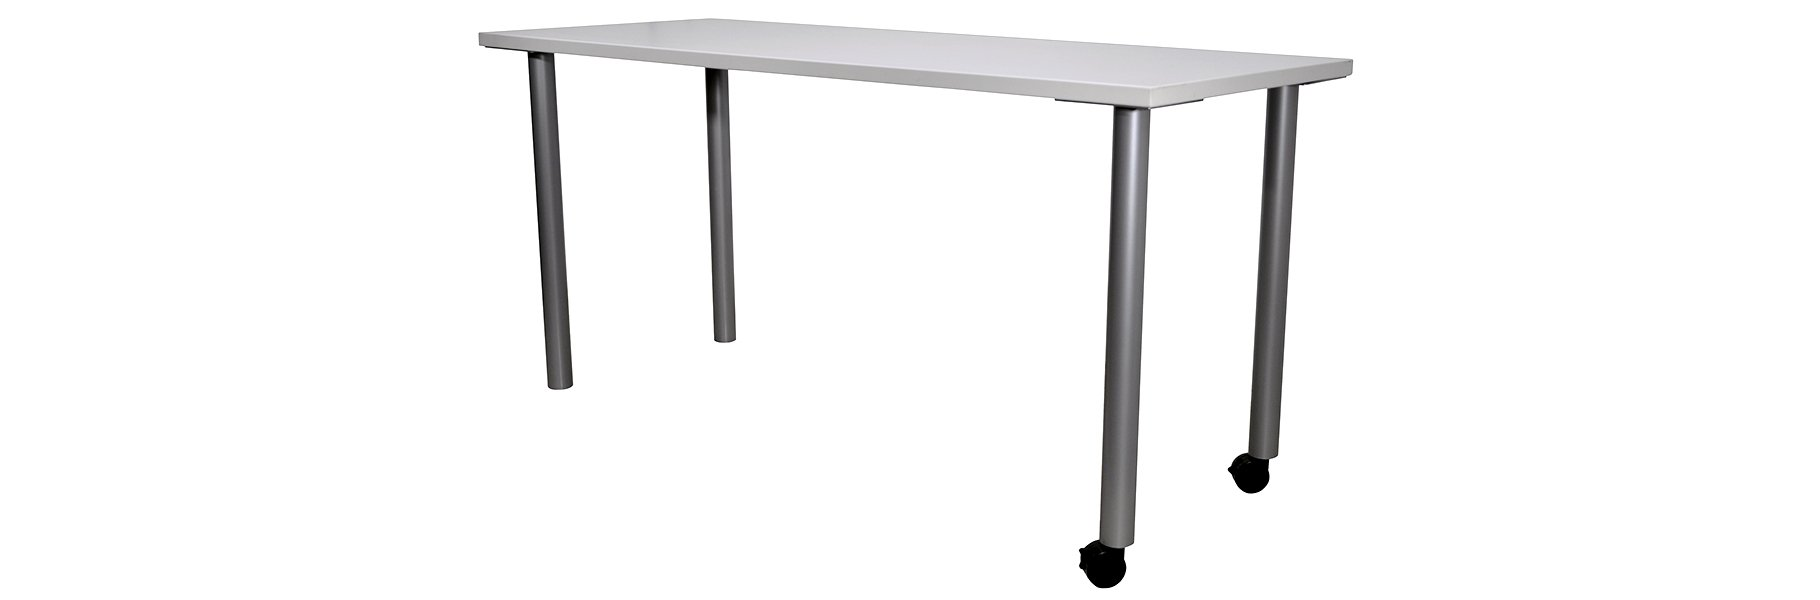 Corilam 628 Tubular Leg Table